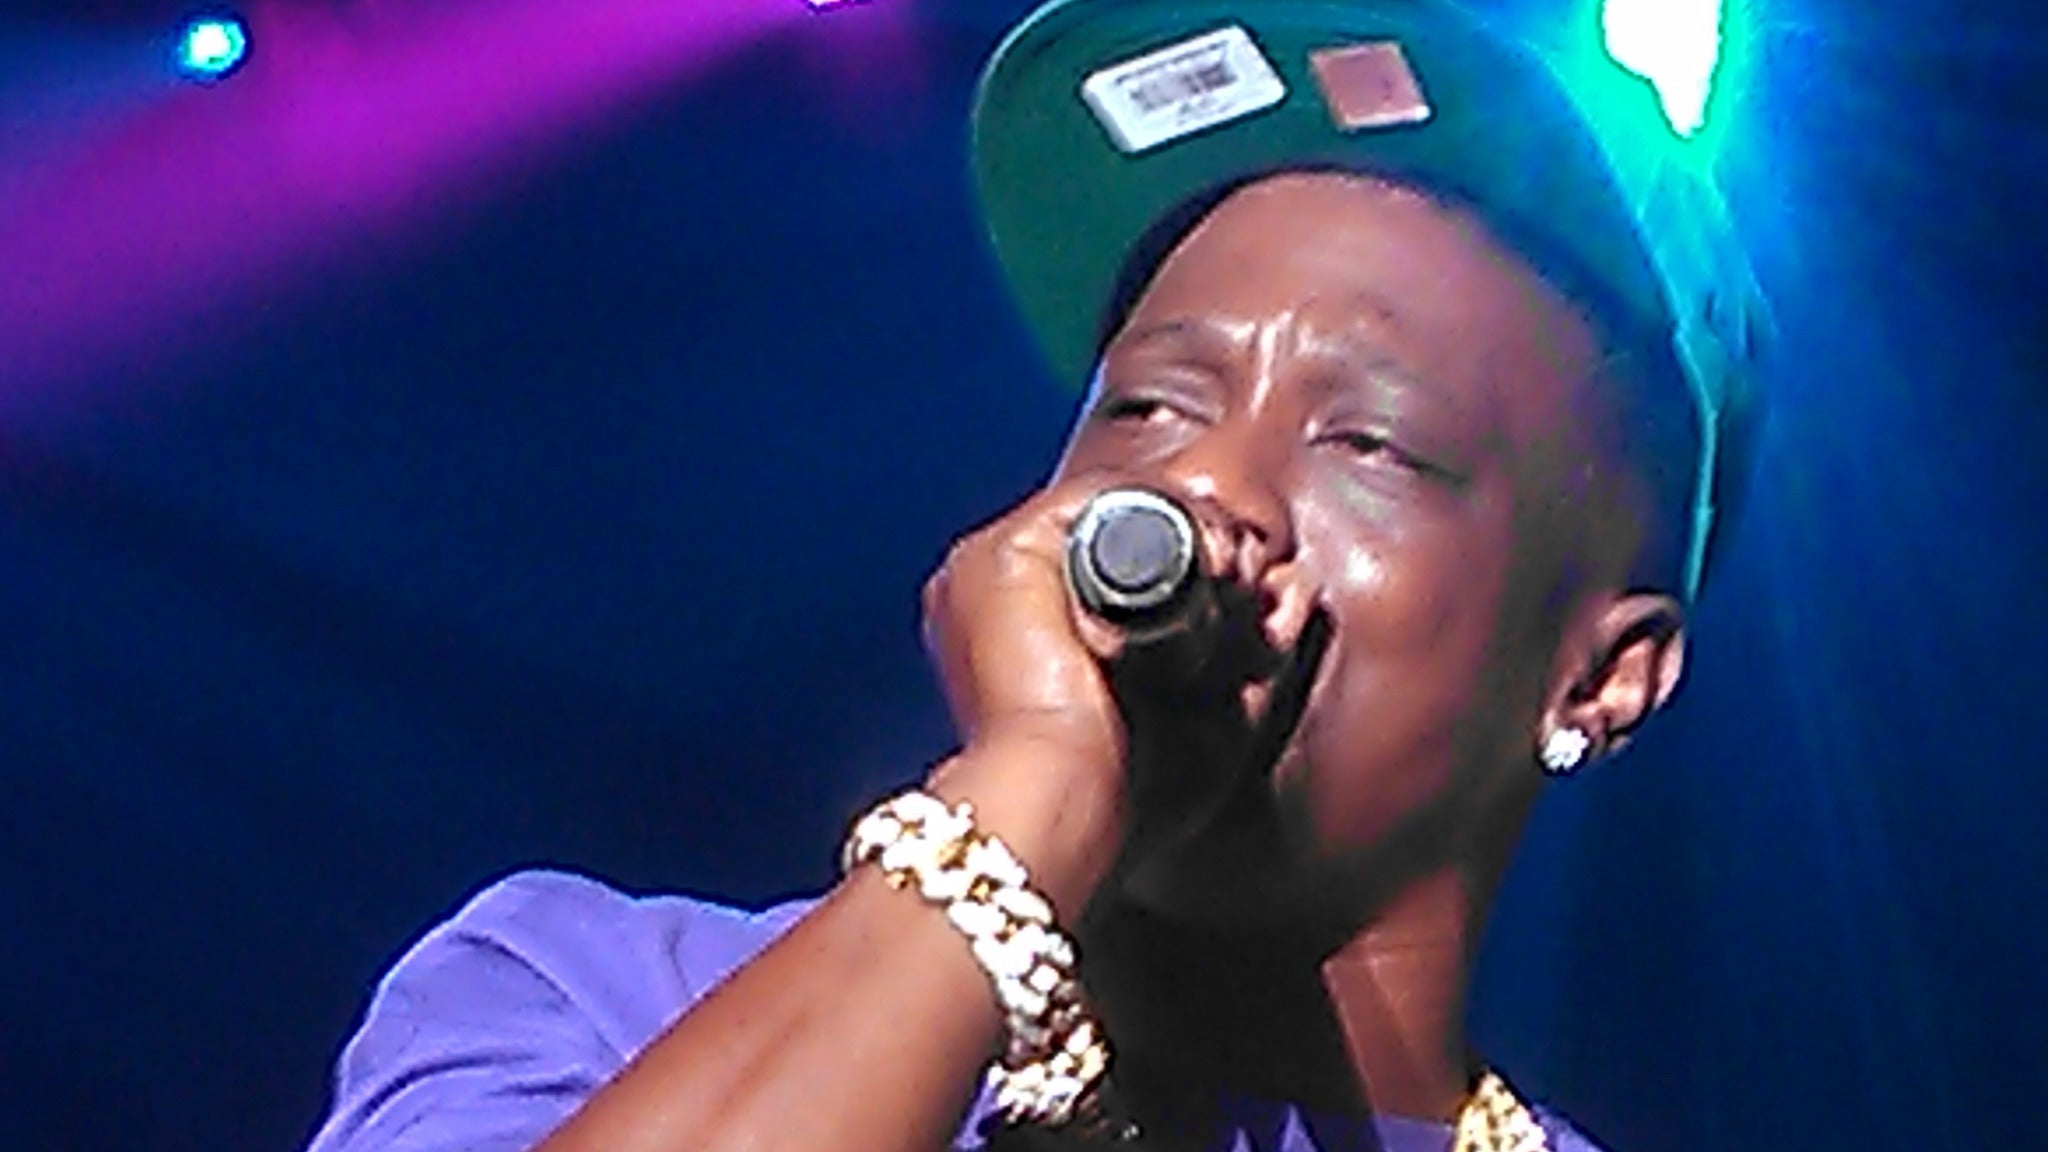 The Empire Summer Heat Concert with Lil' Boosie and Plies